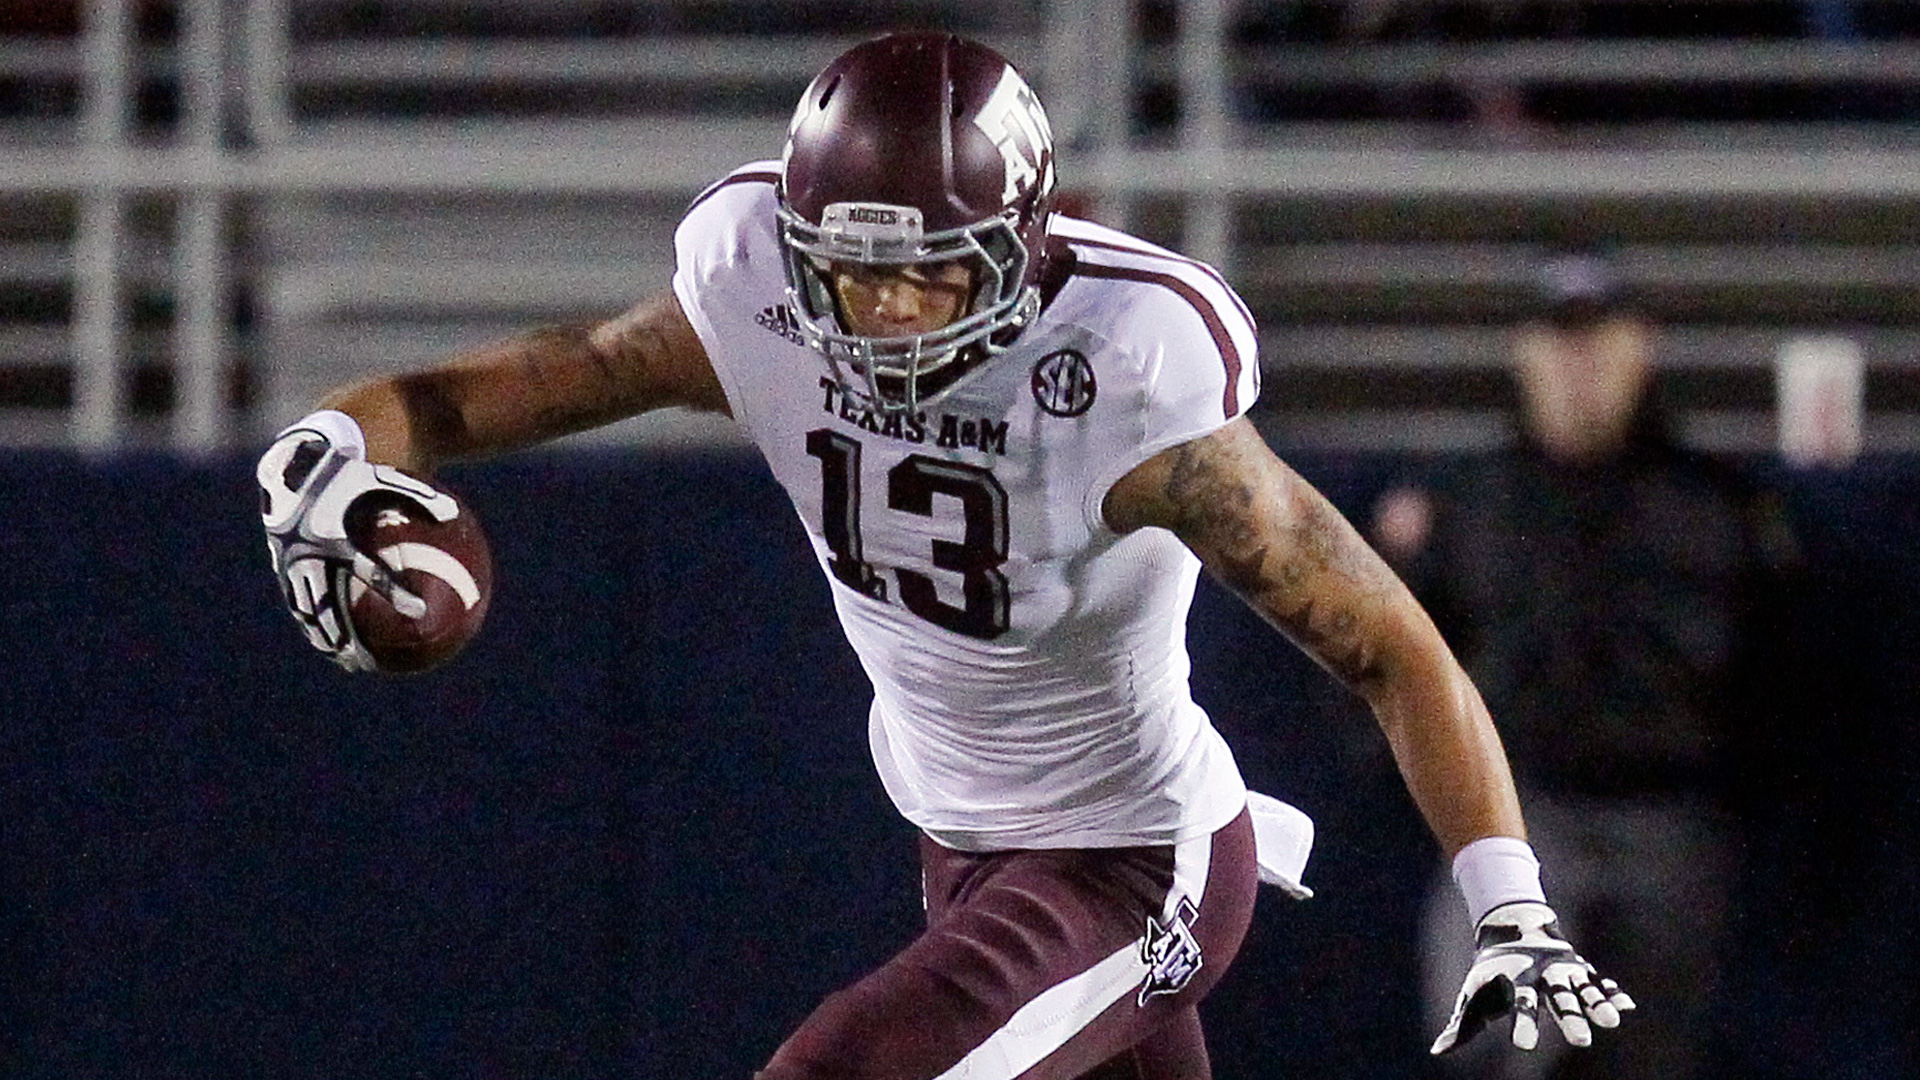 2014 NFL Draft -- Buccaners select Mike Evans with No. 7 pick